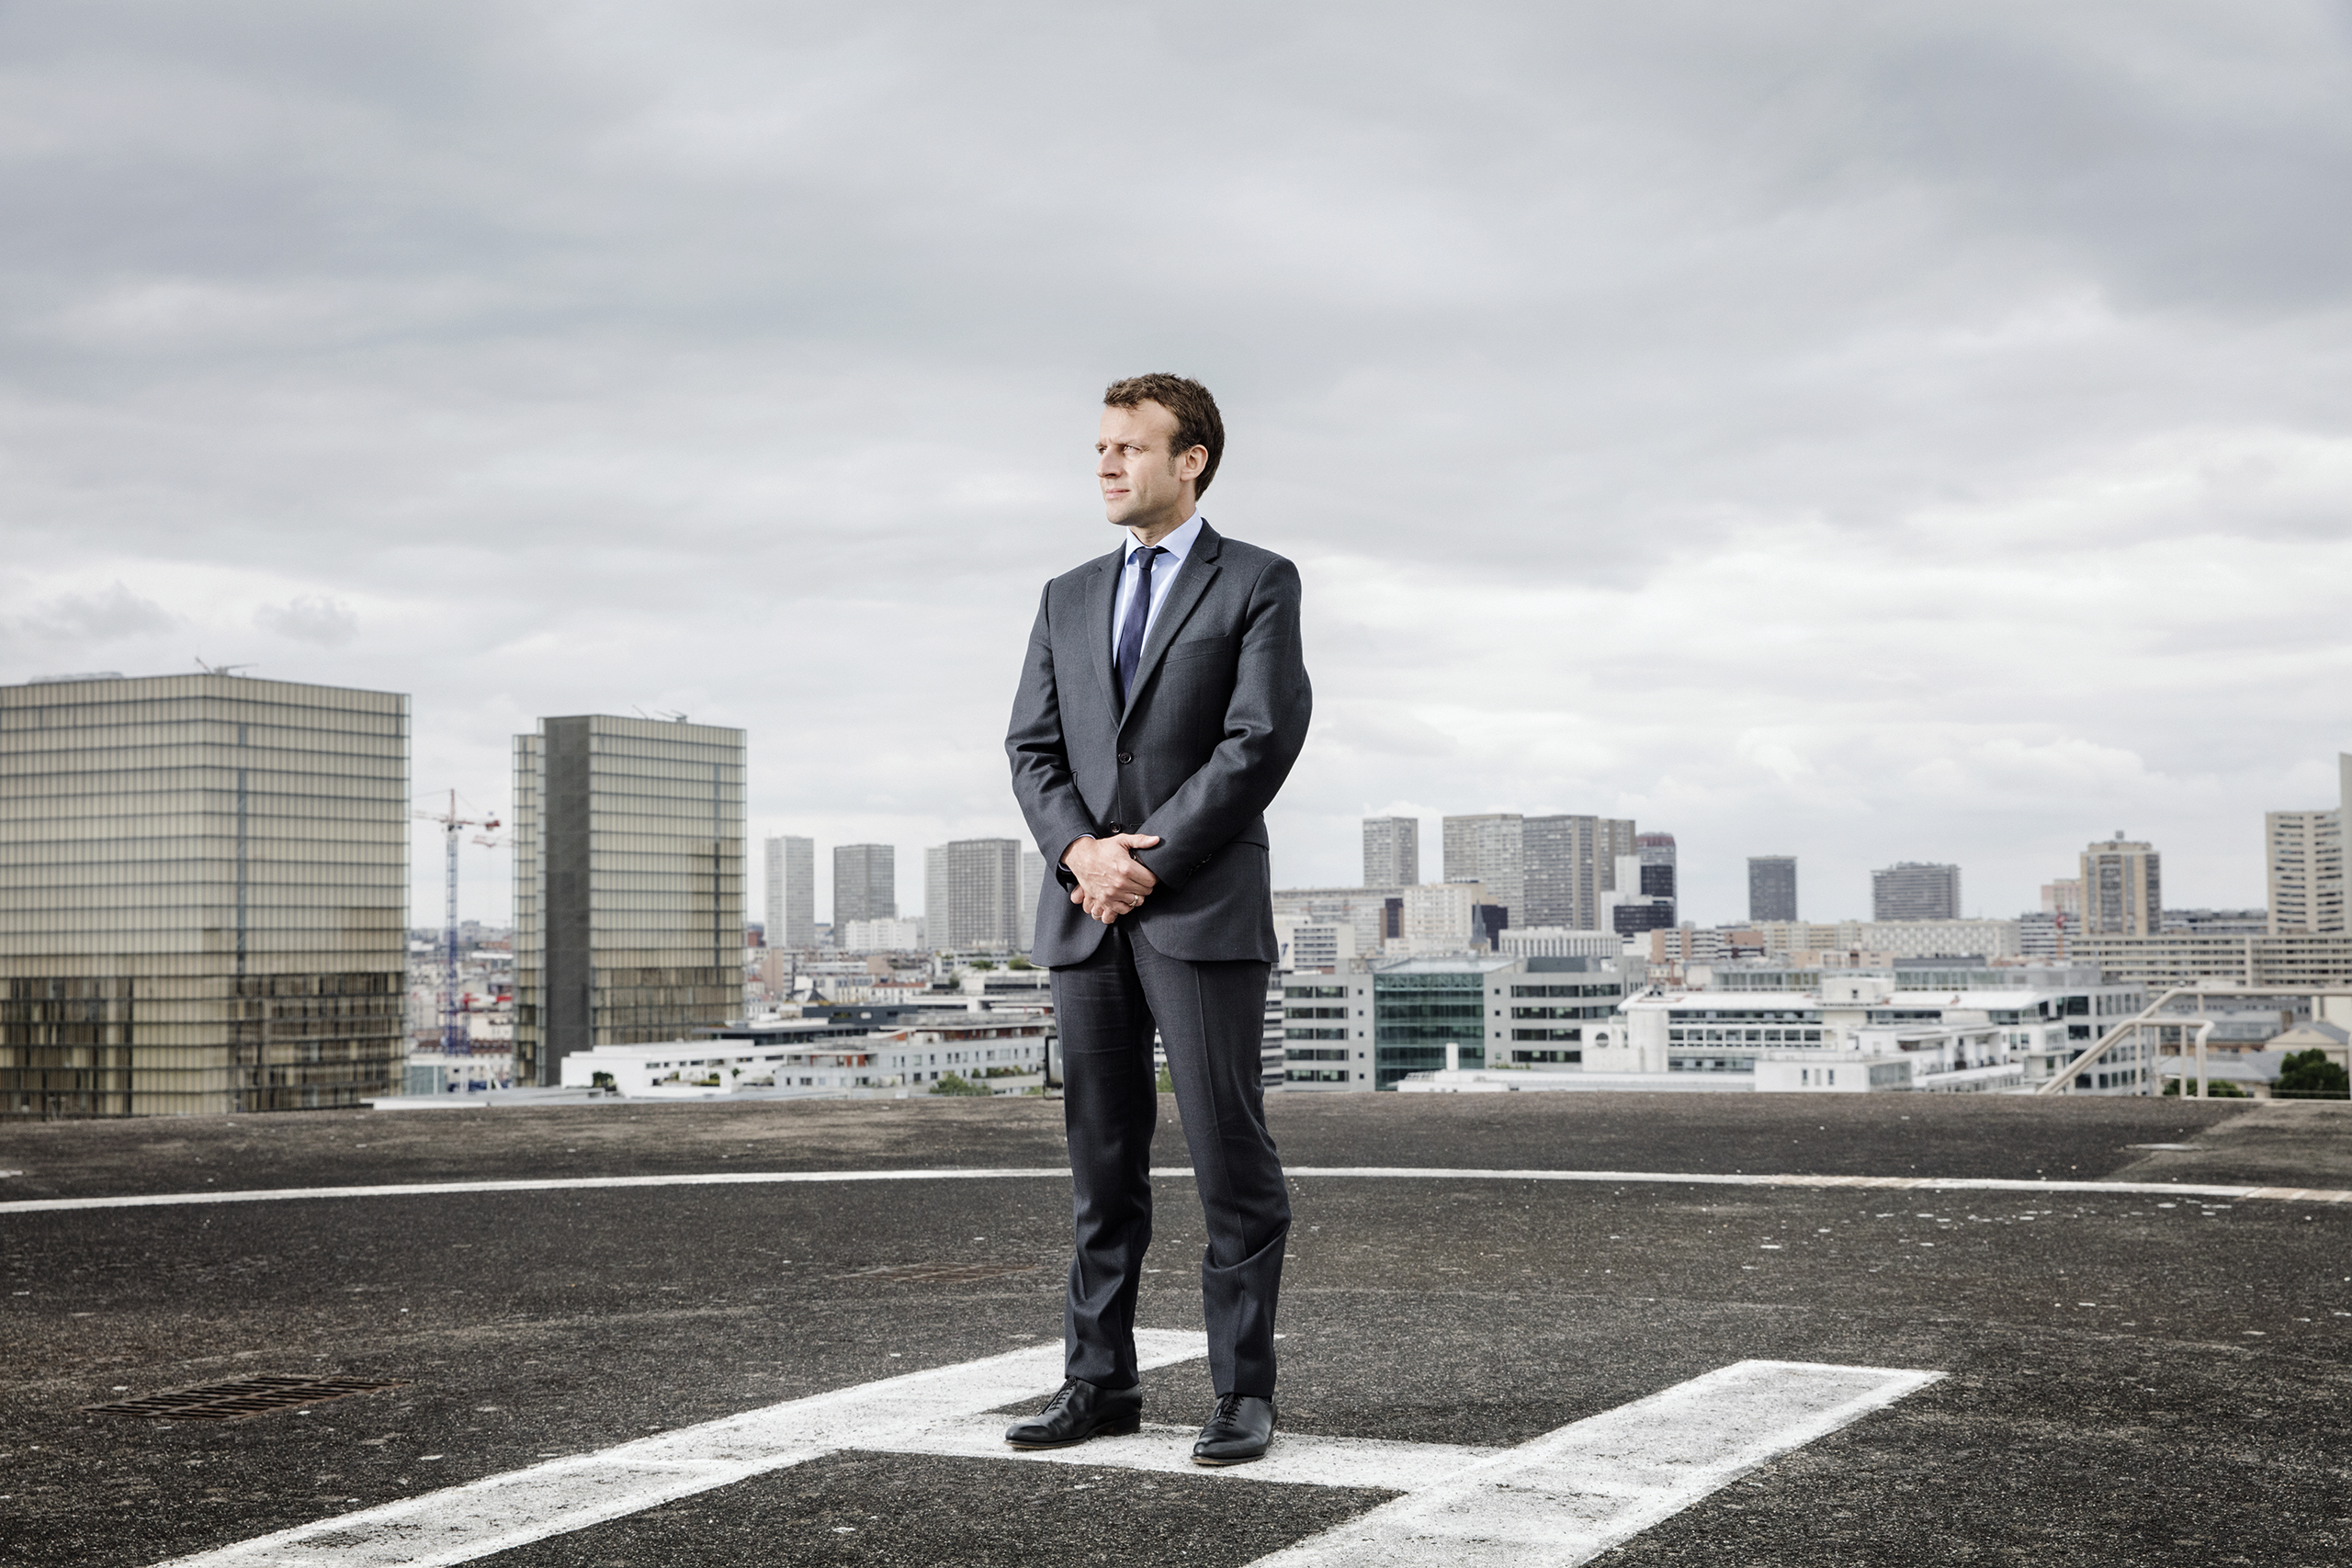 Emmanuel Macron, France's Minister for the Economy, Industry and Digital Affairs, on the heliport of the the Ministry of Economy and Finance in Paris on June 13, 2016.